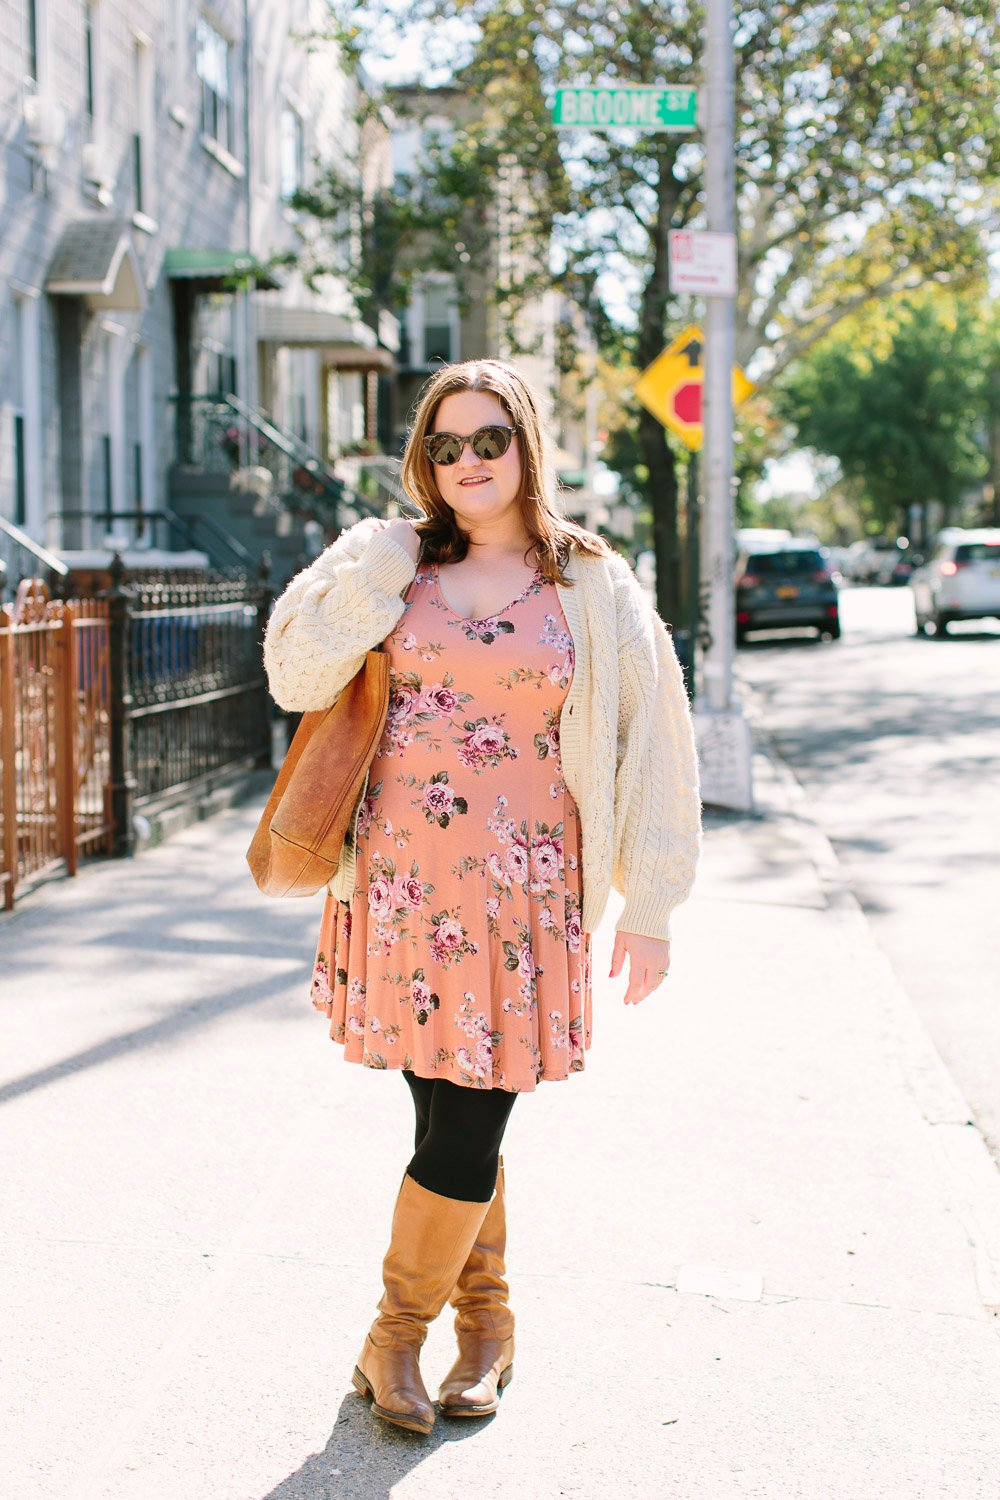 A Week of Outfits: Kelsey Miller